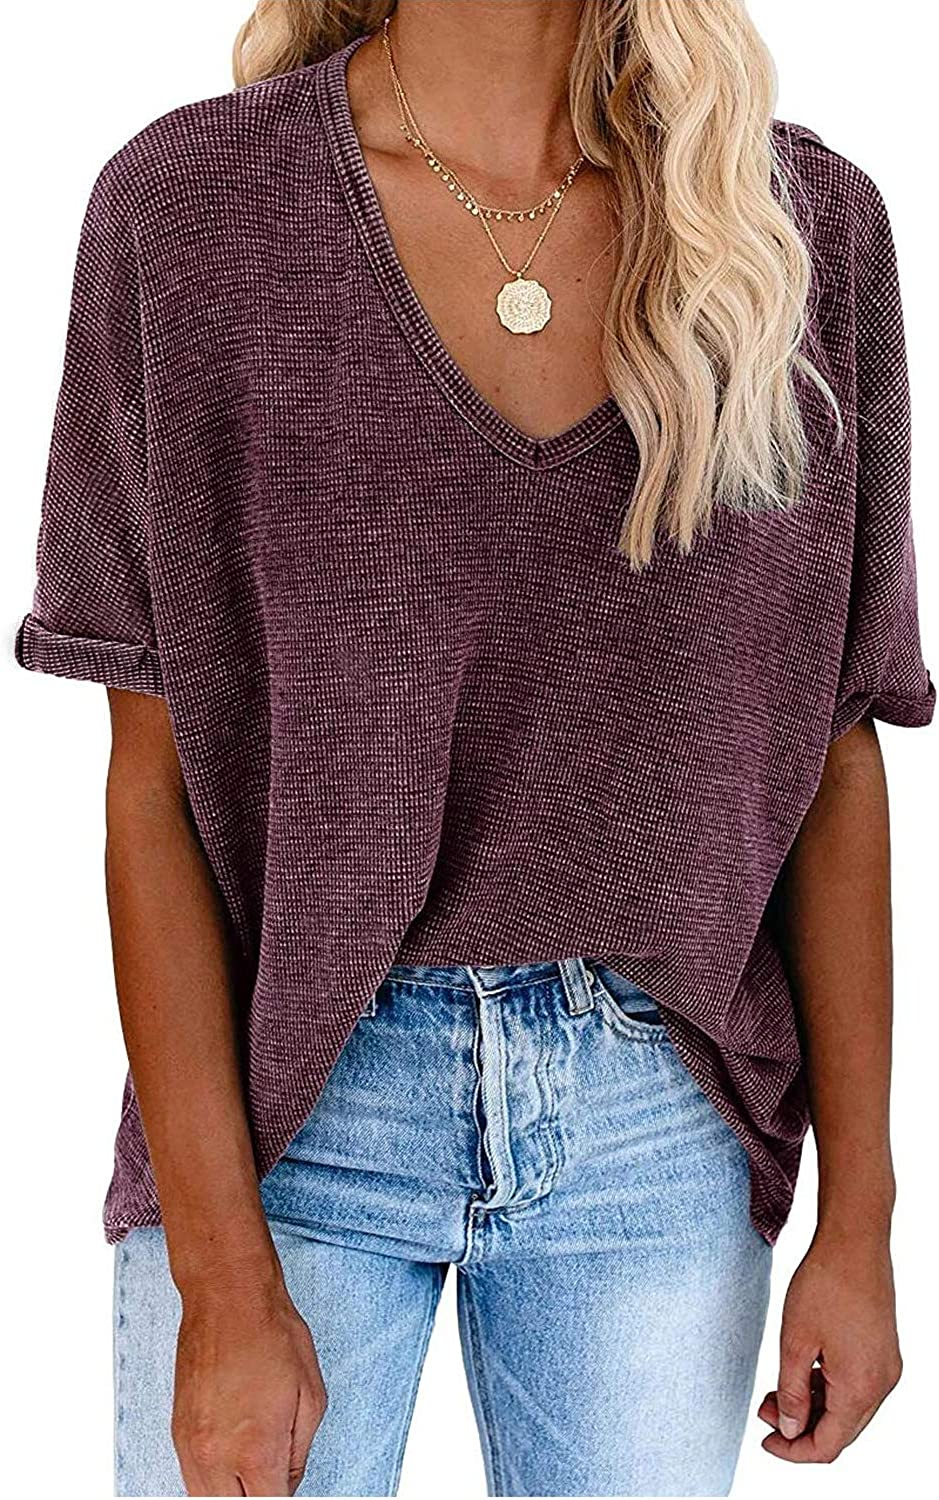 Ribtorsp Womens Turn Up/Sleeves/Cotton/T-Shirt/Relaxed/Fit High/Low/Hem/Casual/Summer/Tops/Basic/Blouse